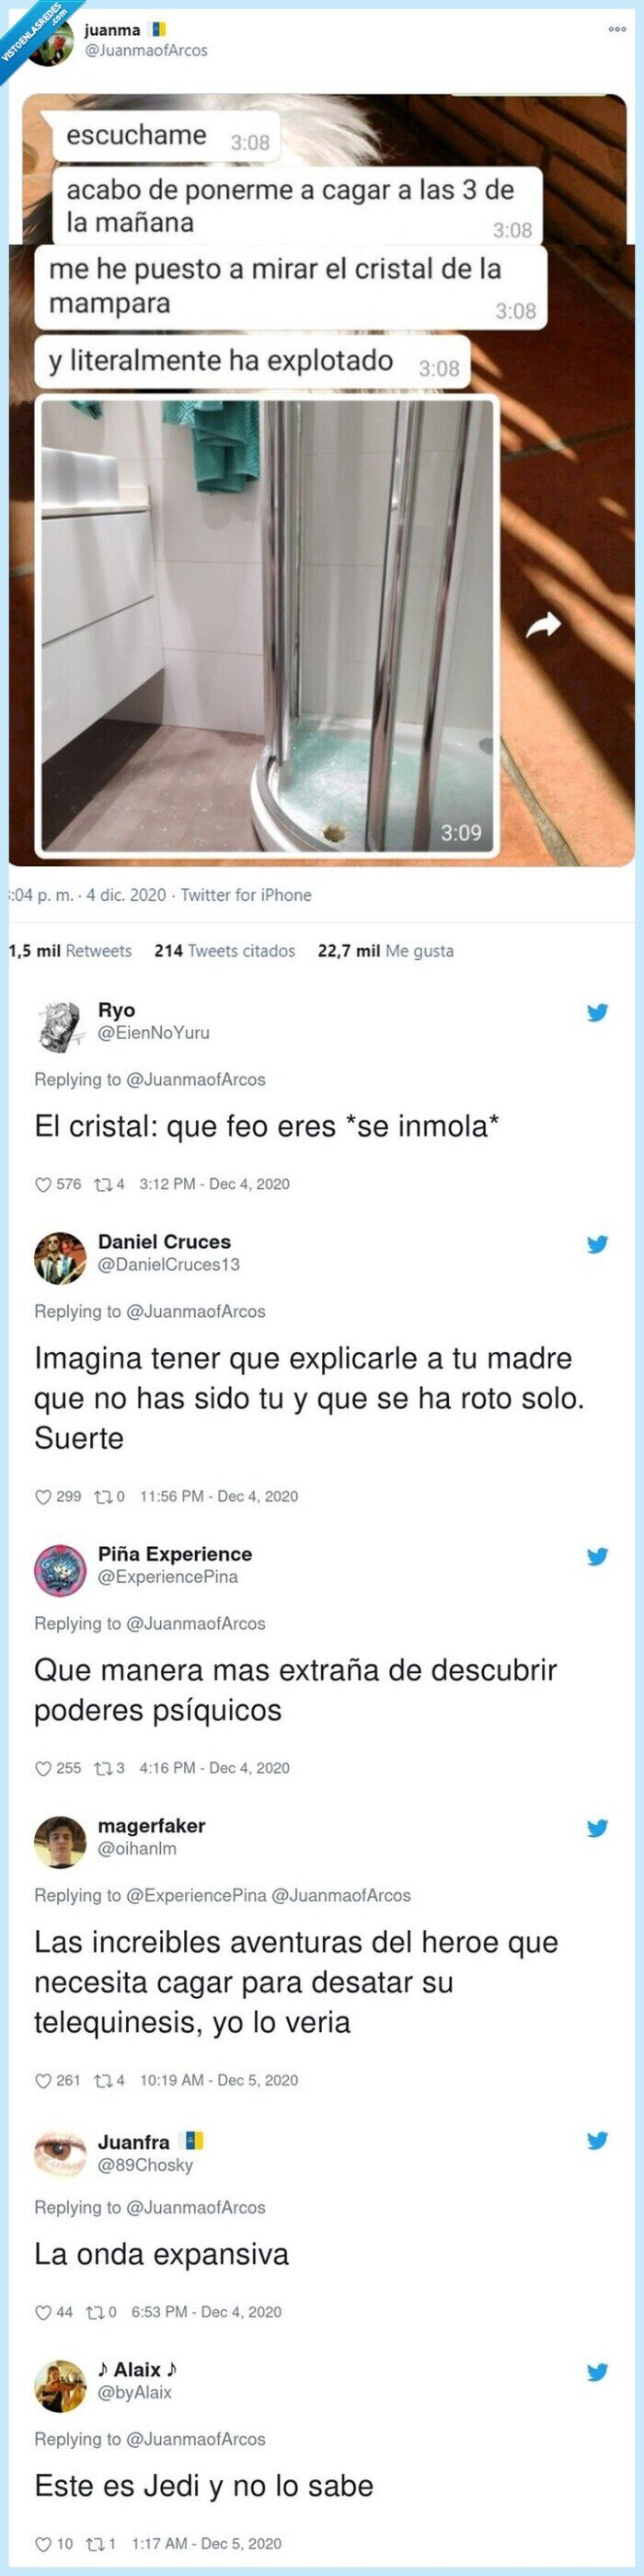 cachondeo,cagar,lavabo,mampara,superpoderes,telequinesis,twitter